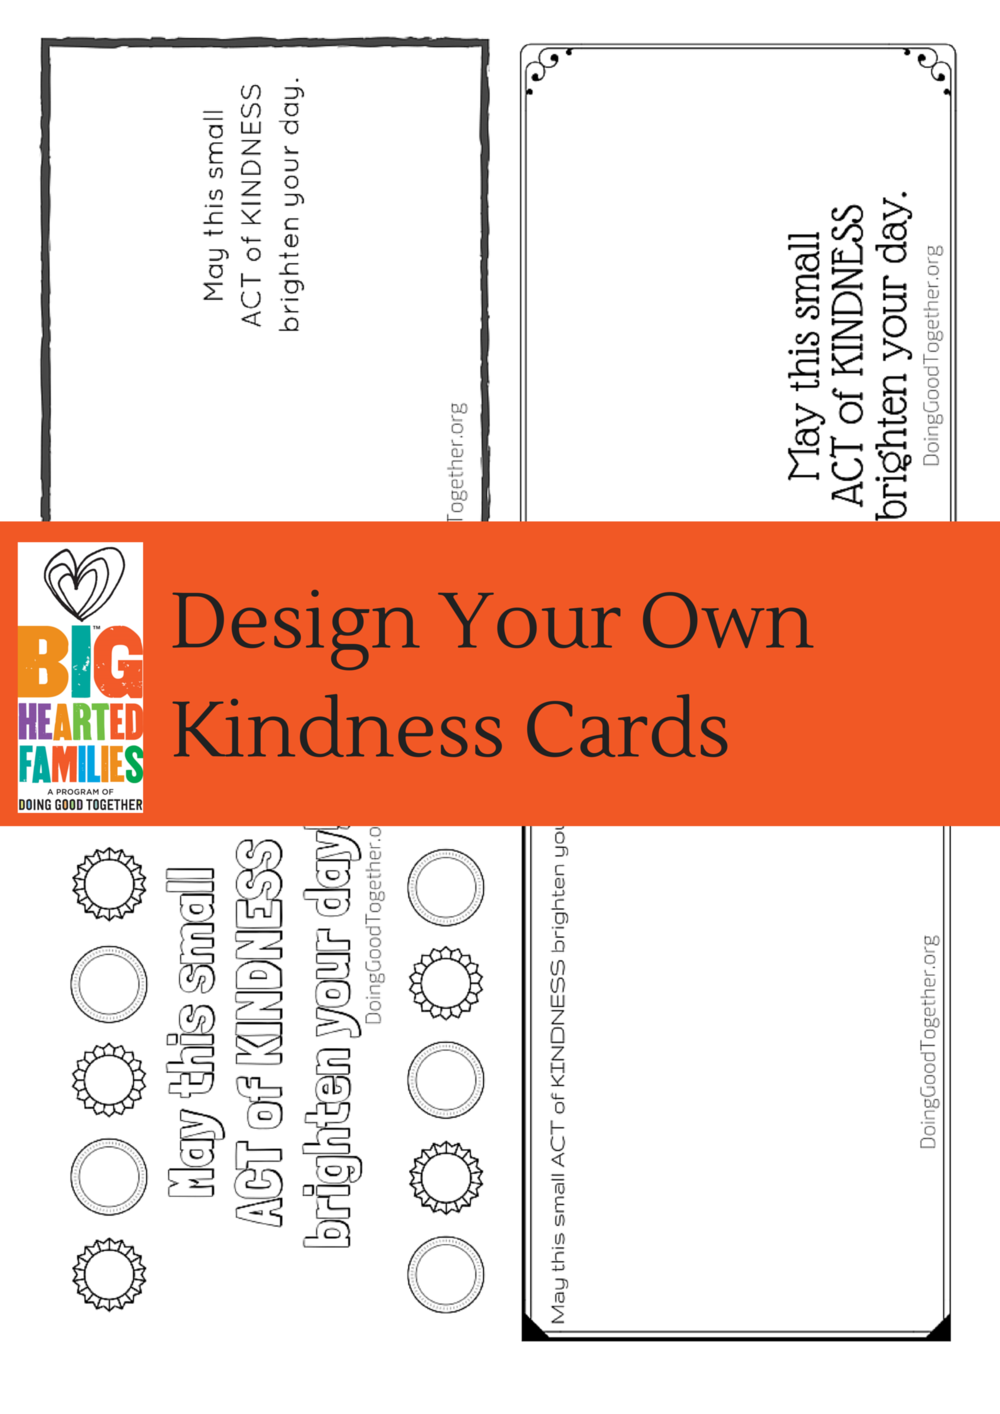 Design your own artistic cards to leave behind after a random act of kindness.